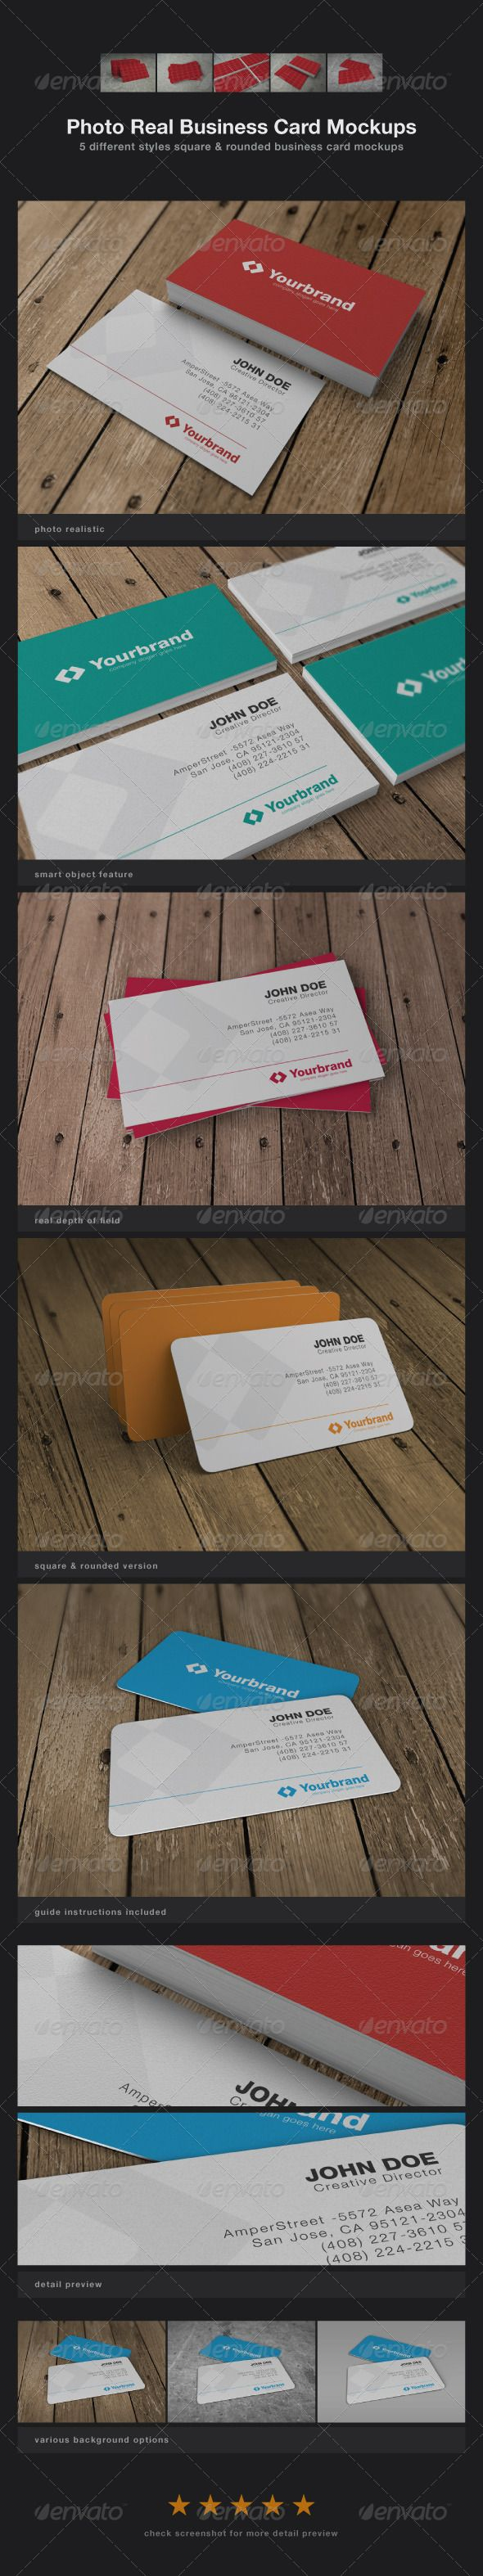 99 best mockups images on pinterest miniatures mockup and model photo real business card mockups reheart Images